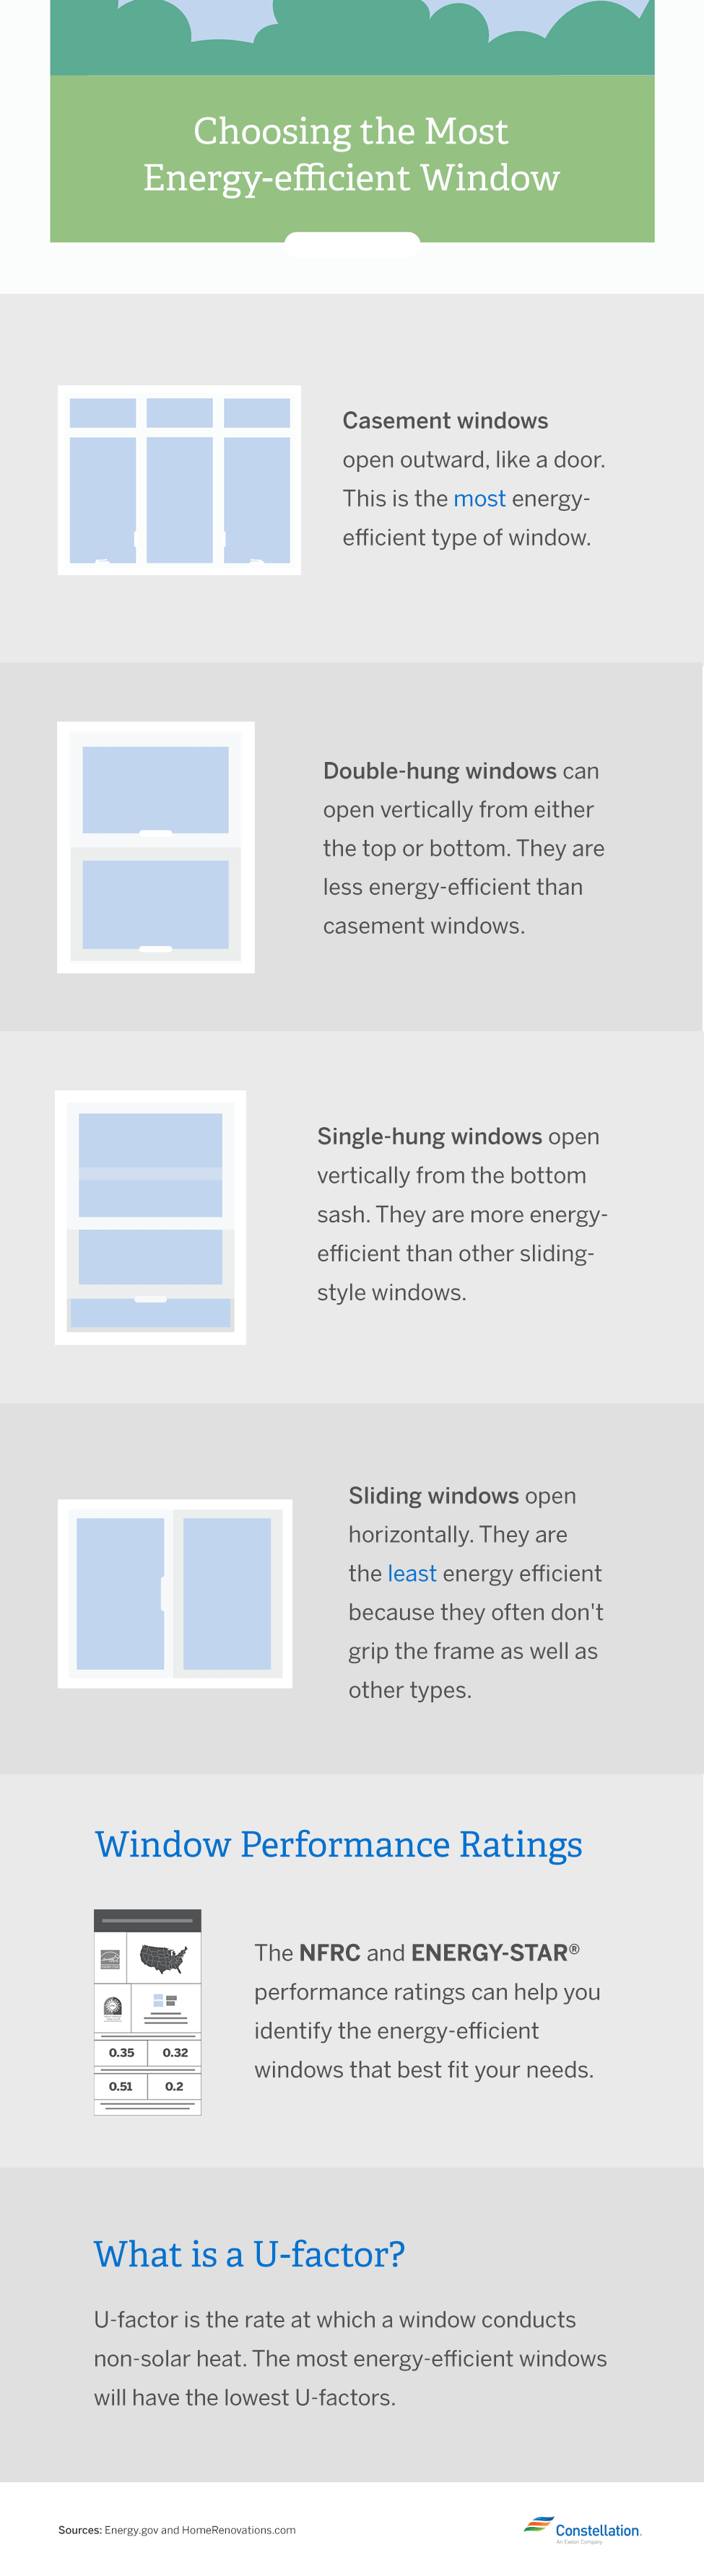 Energy efficiency series benefits of energy efficient windows for Most energy efficient windows